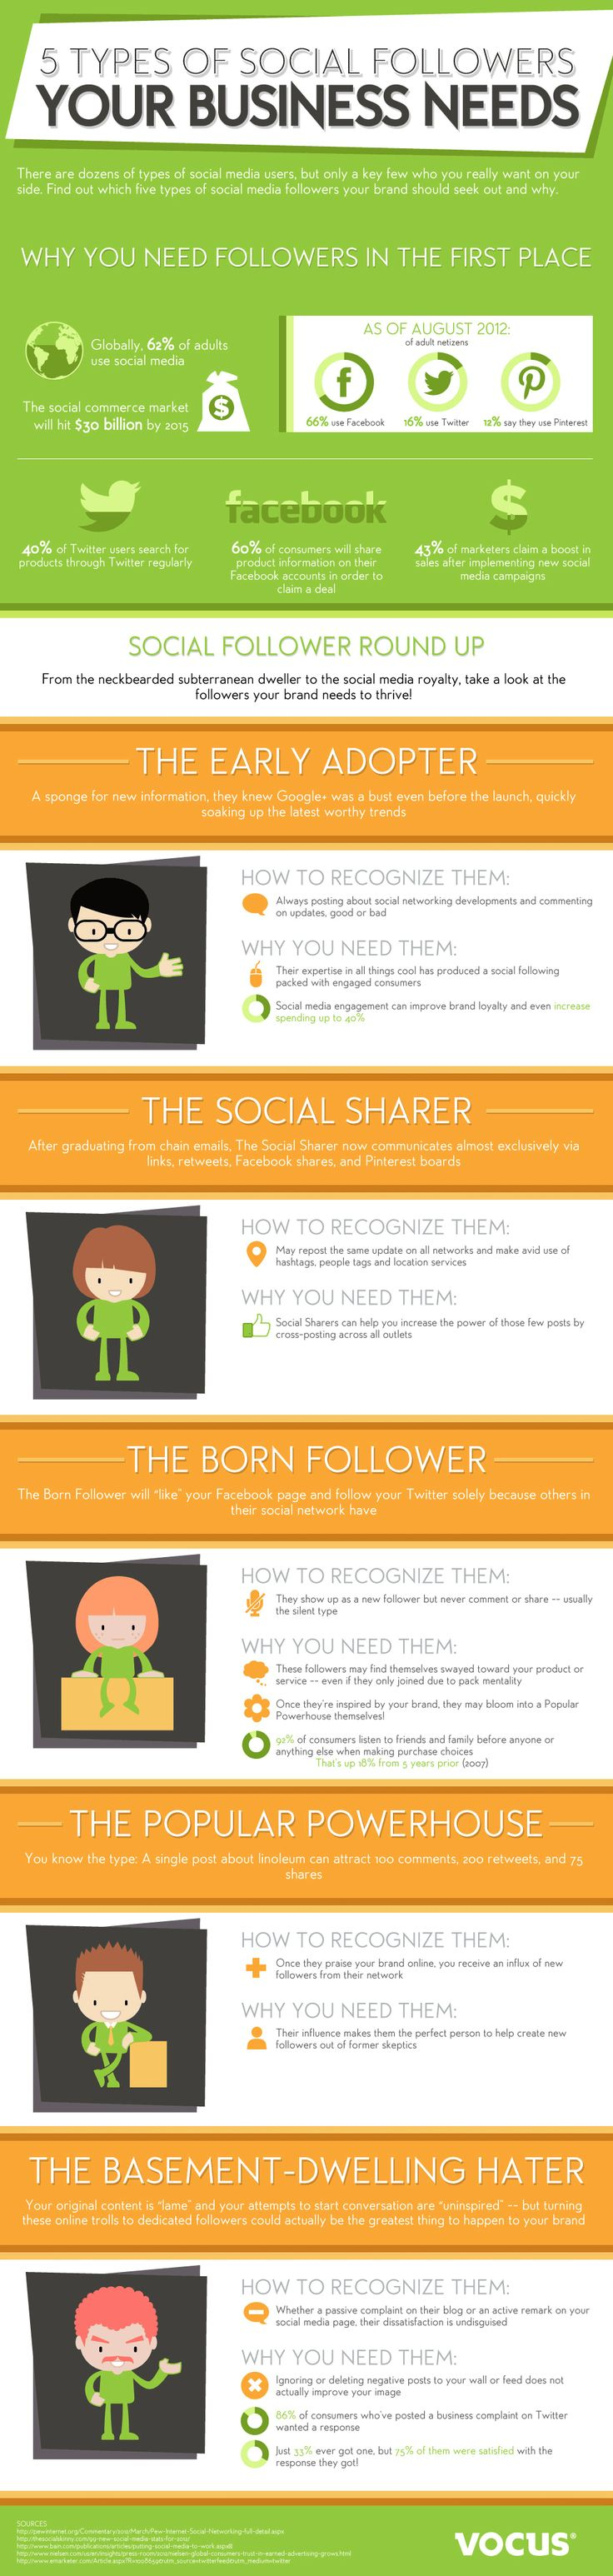 Millions use social media, but which benefit your business? This infographic breaks down the five types of social media followers your business needs.